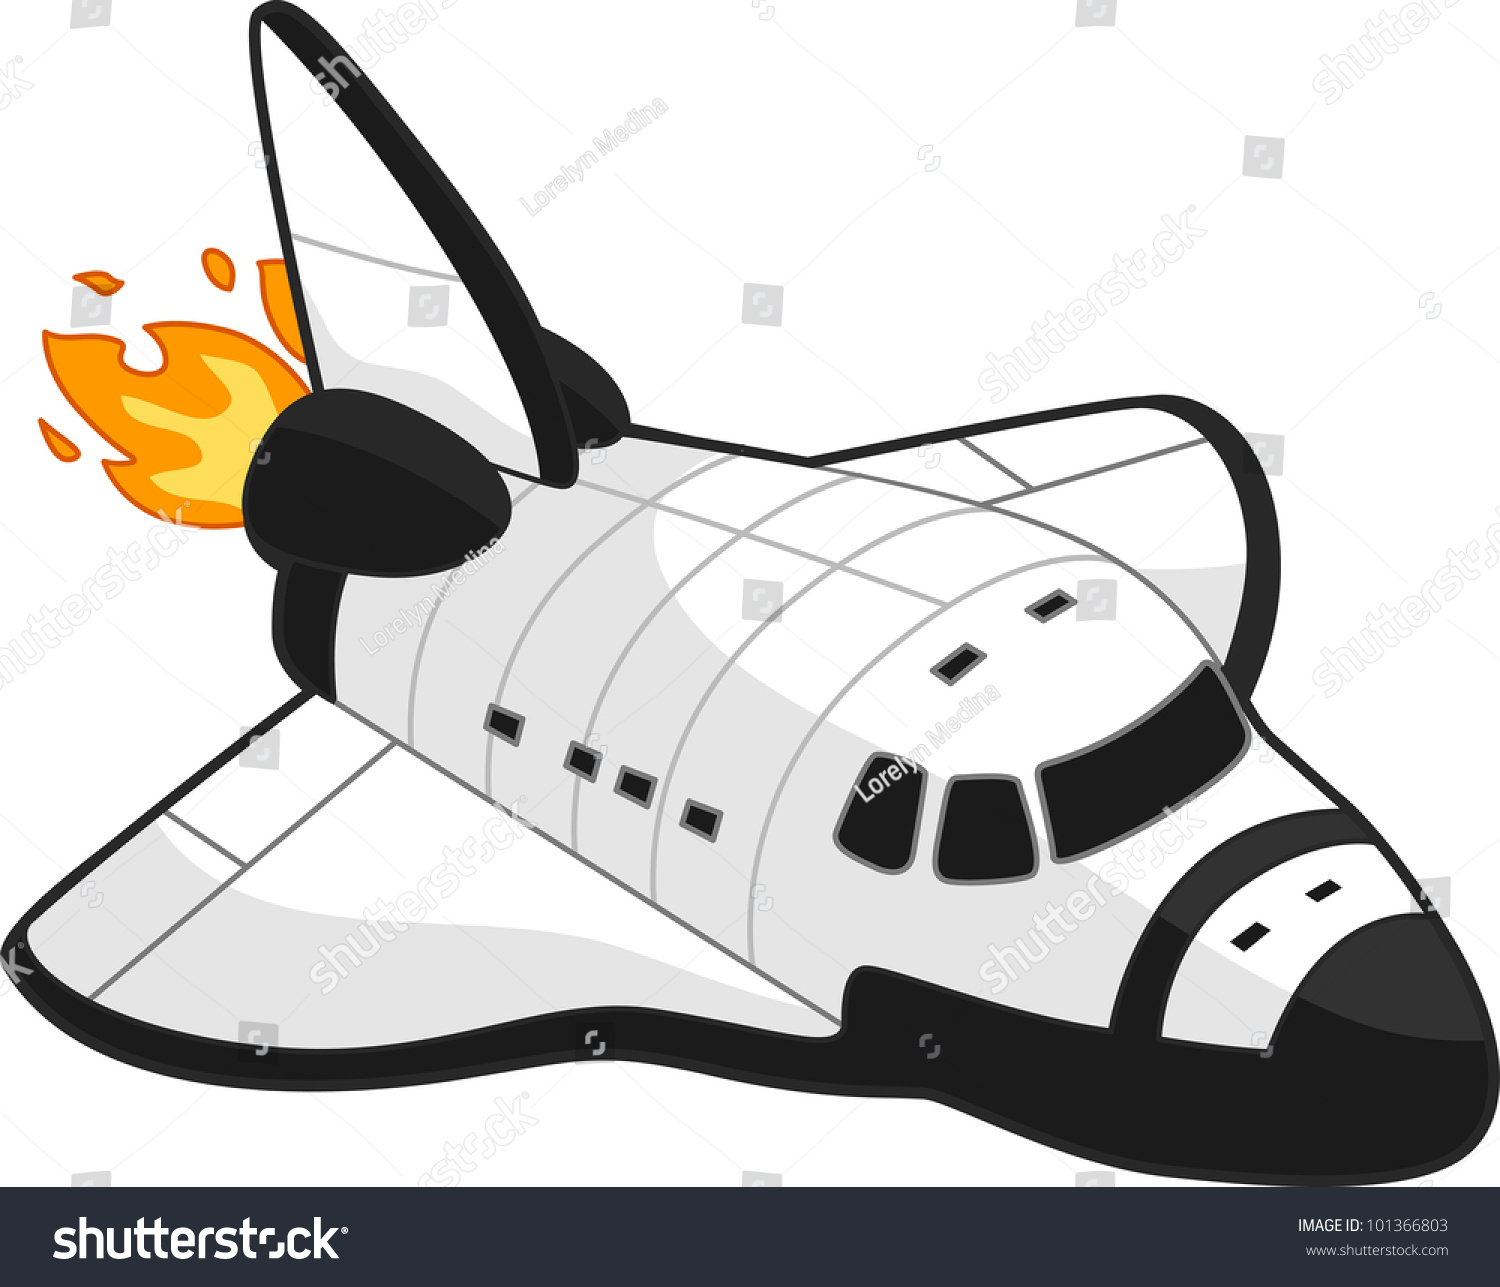 new space shuttle illustration - photo #29